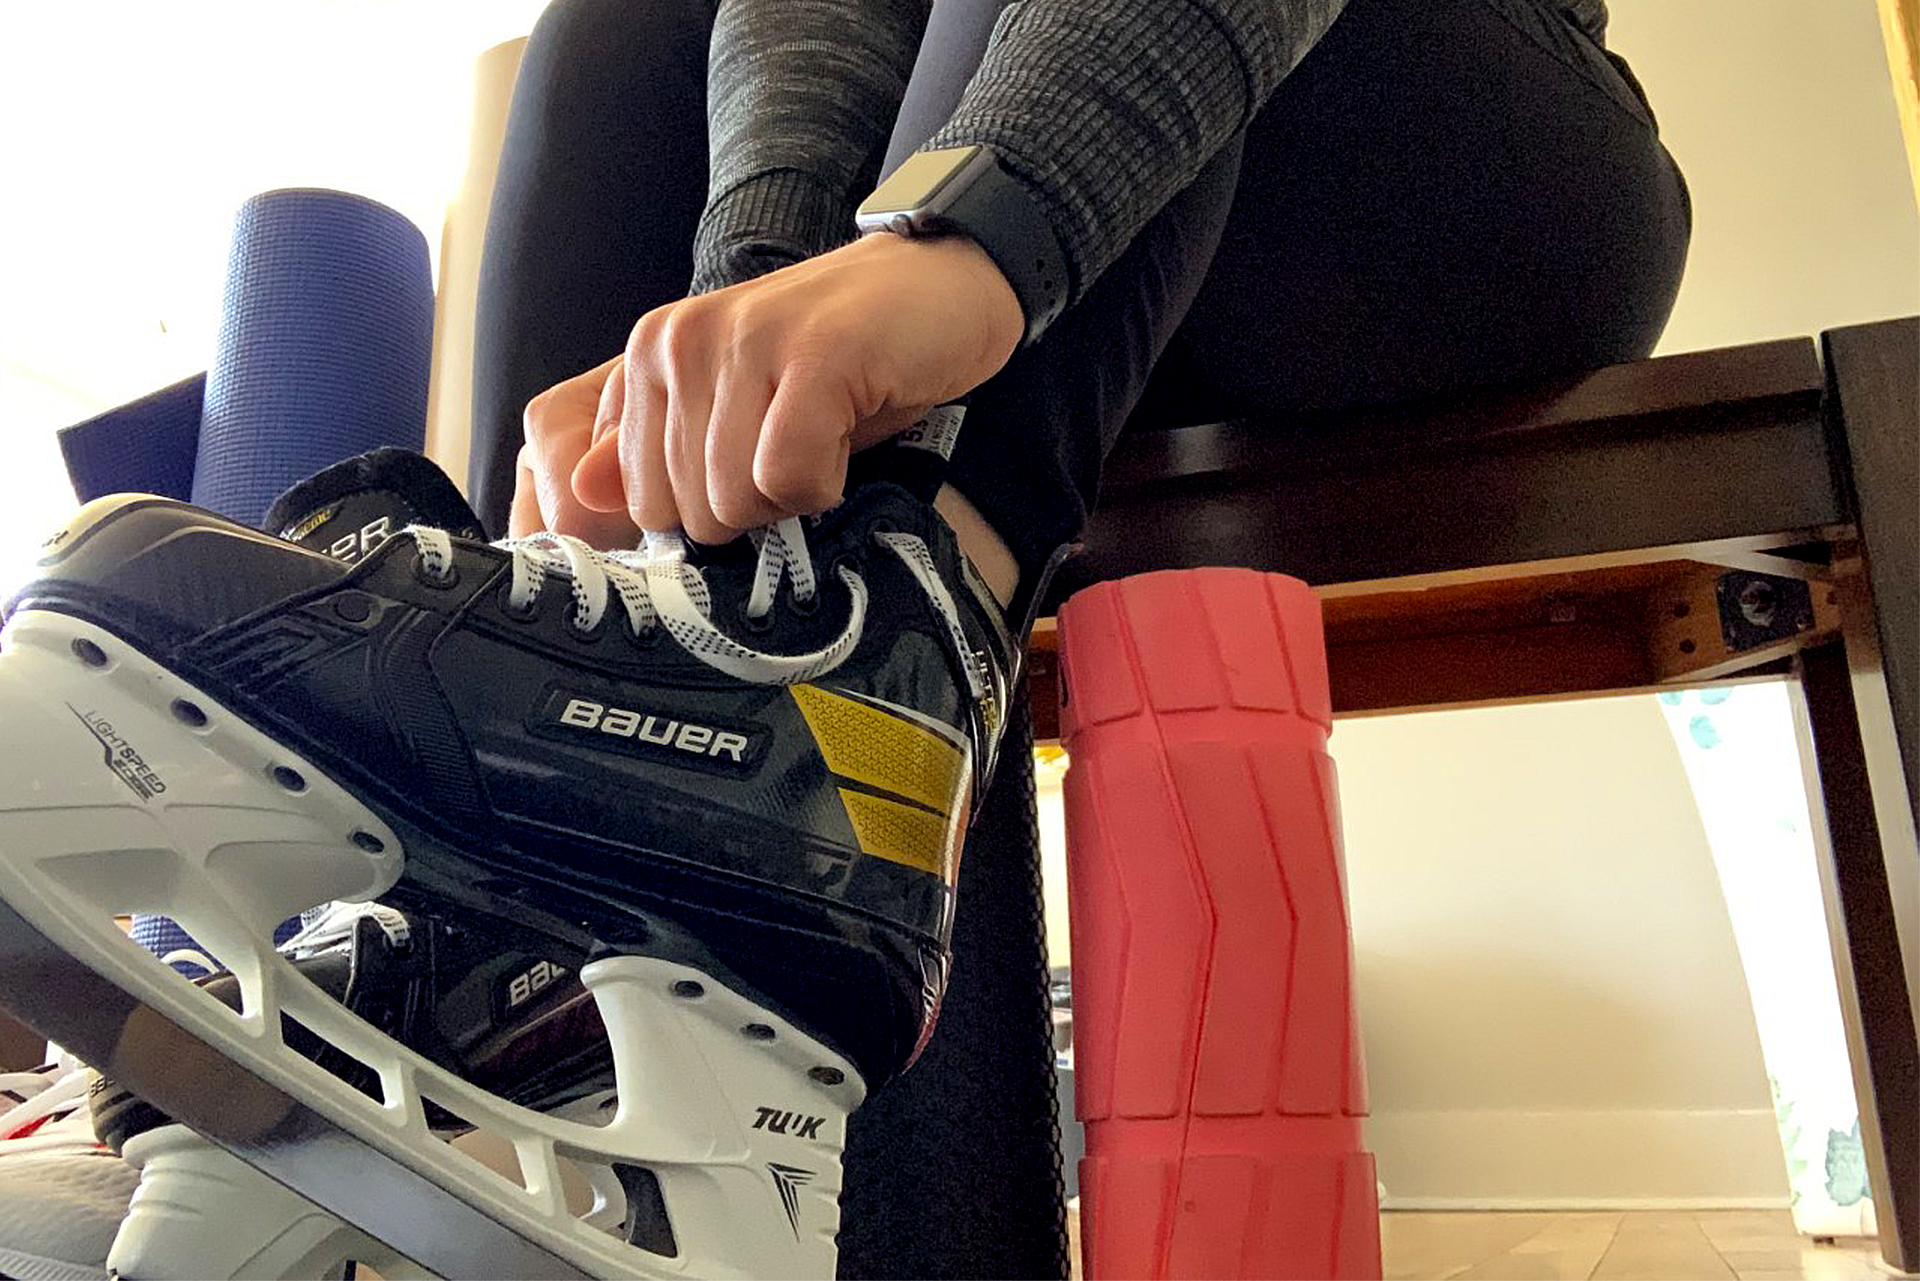 A woman tying her skates.